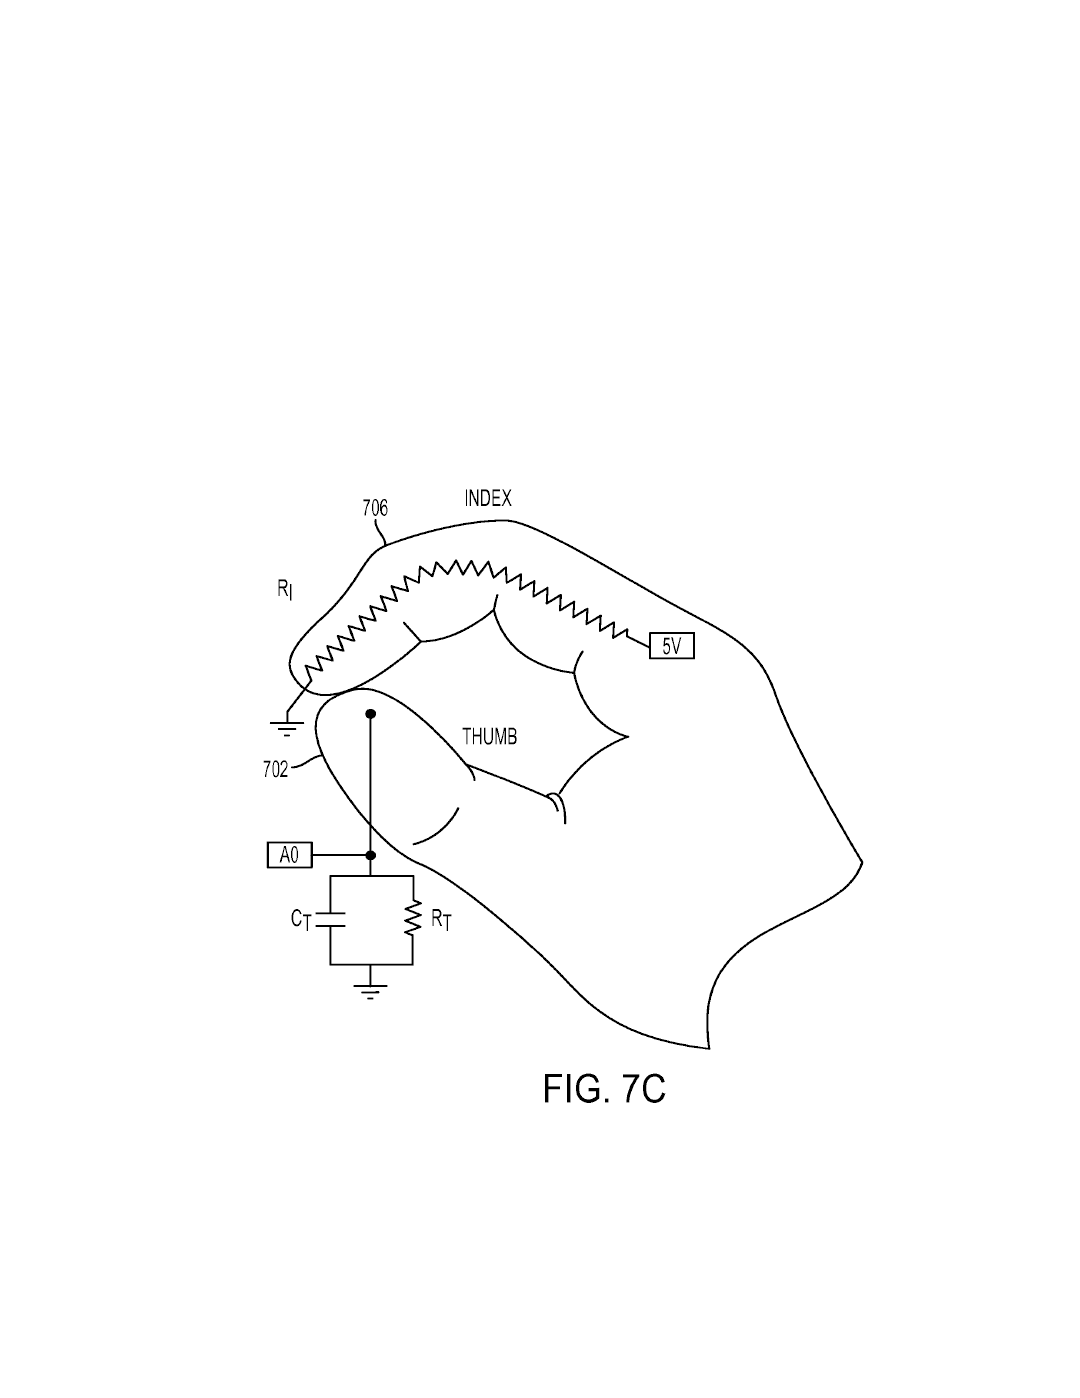 sony files 3 patents for glove controller for use with playstation PSU Jewelry 0091 fig 12 illustrates ponents of a head mounted display in accordance with an embodiment of the invention